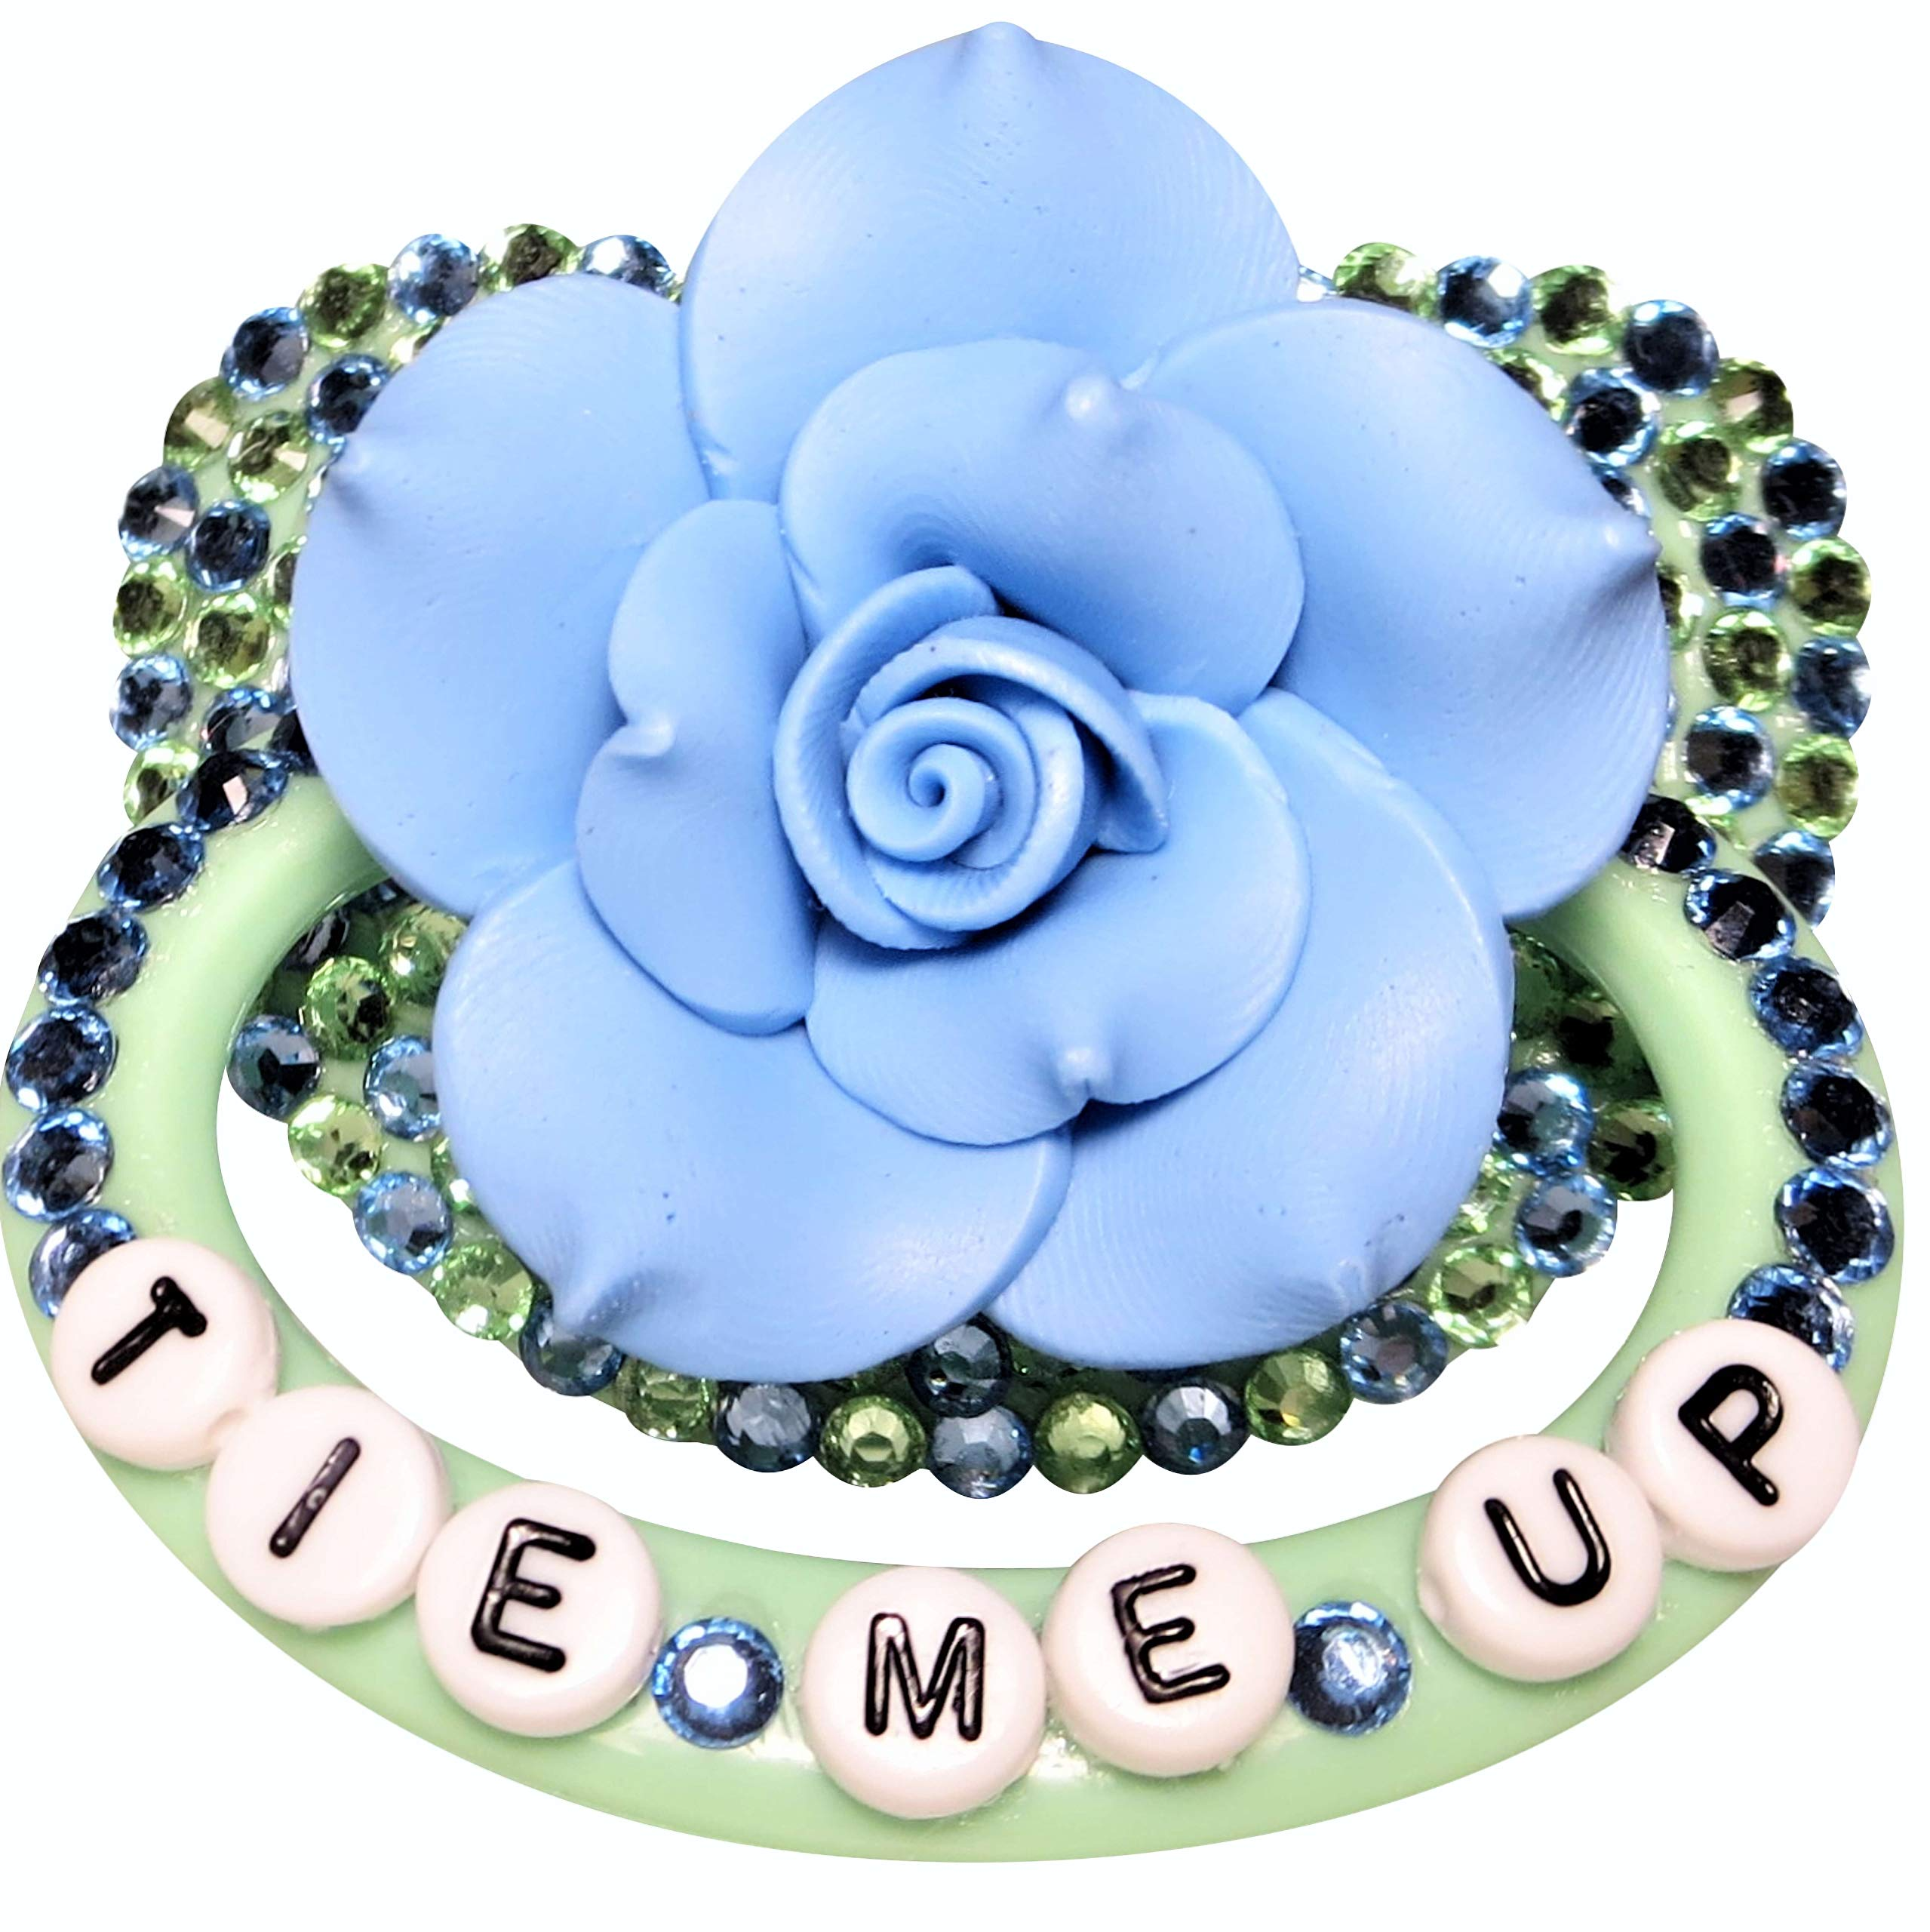 Baby Bear Pacis Adult Pacifier,''Tie Me Up'' Green Flower Adult Paci (DDLG/ABDL) by Baby Bear Pacis